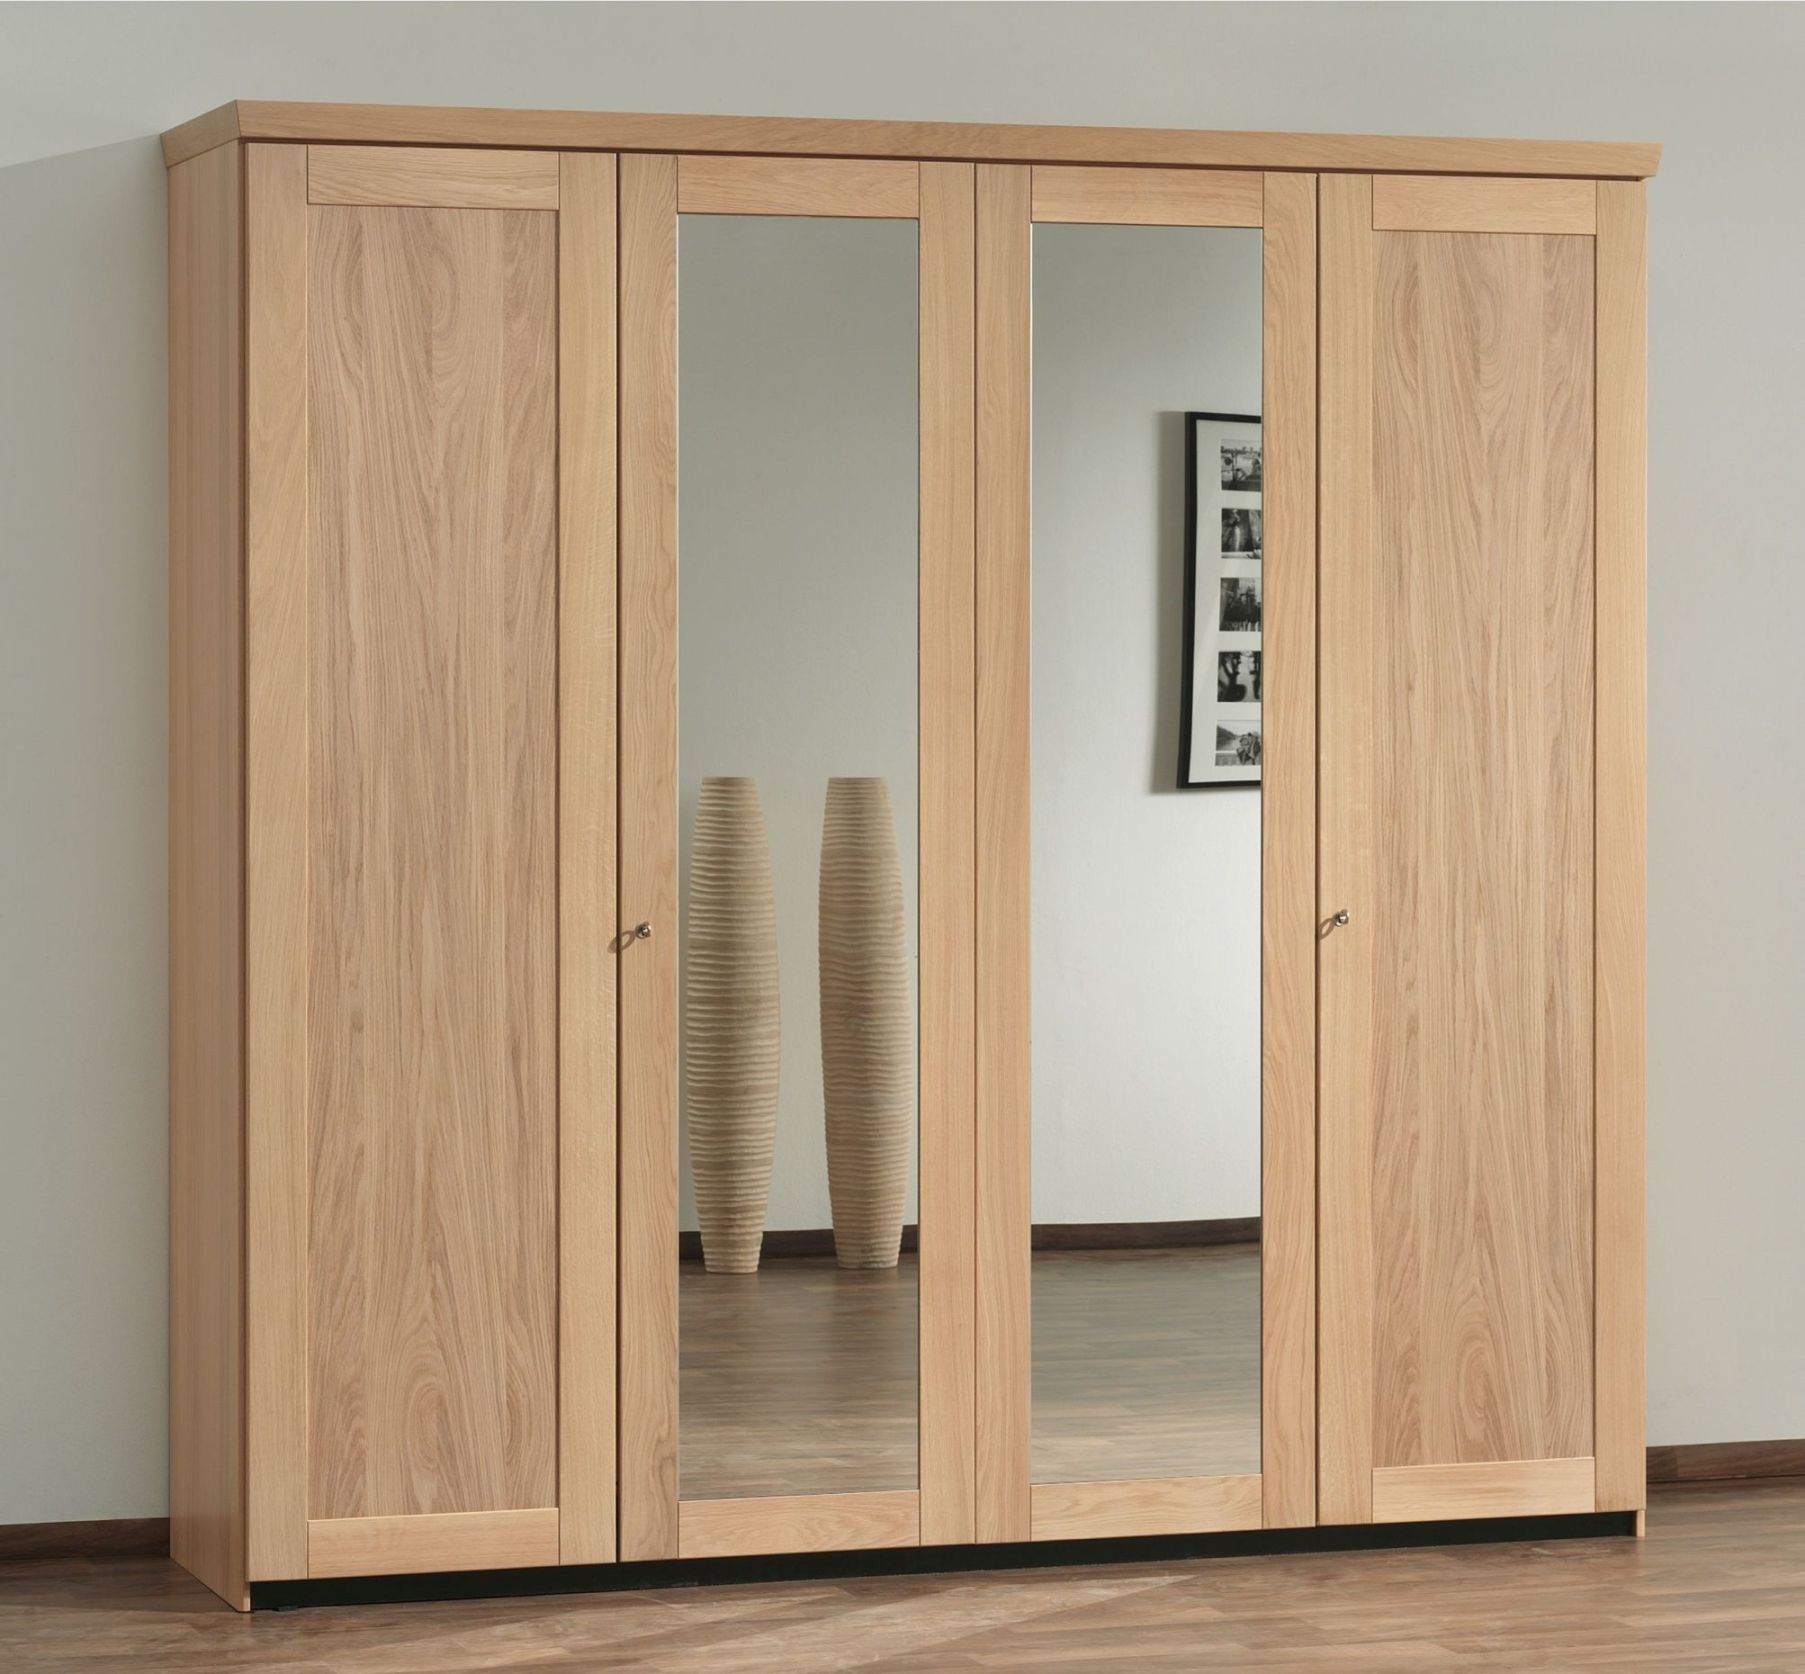 25 photos large wooden wardrobes wardrobe ideas. Black Bedroom Furniture Sets. Home Design Ideas